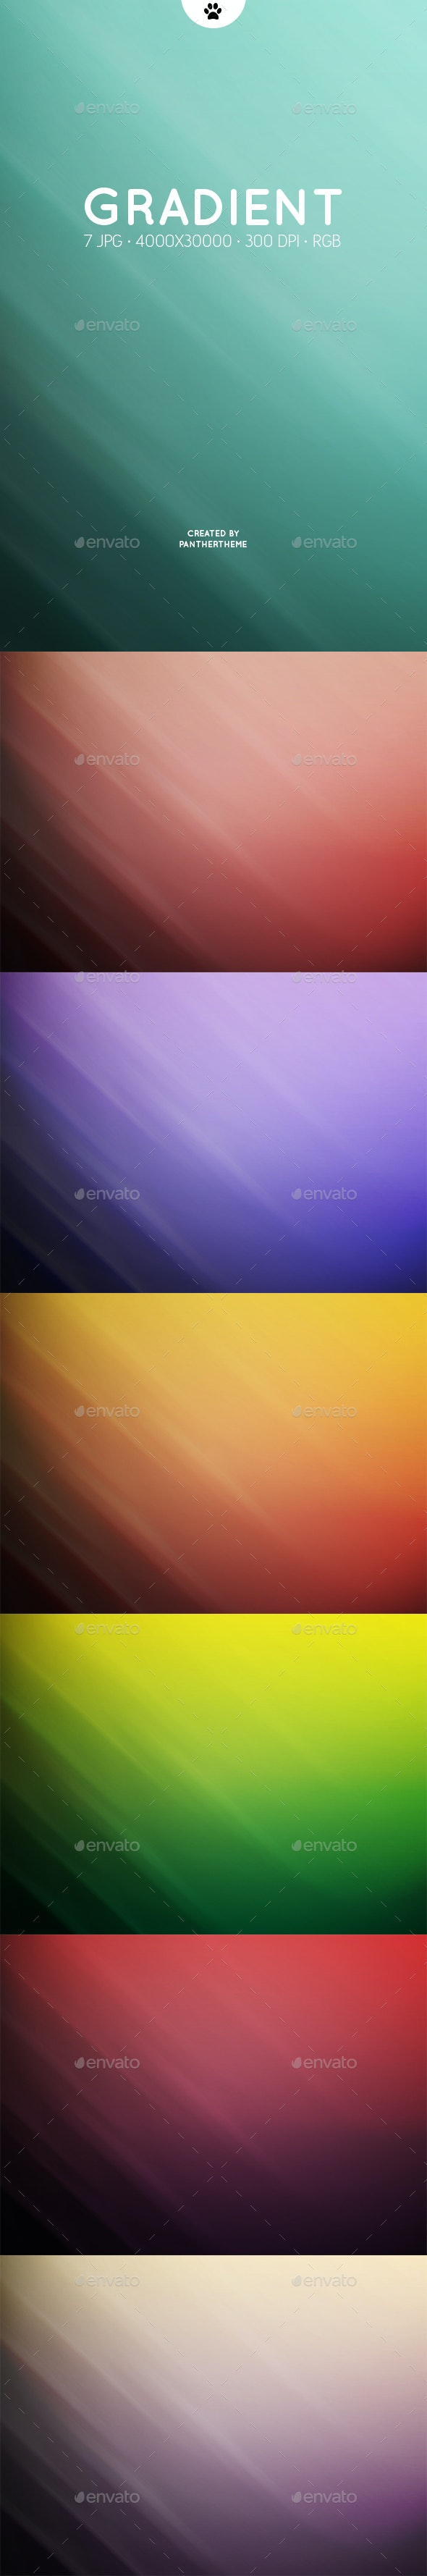 Gradient Backgrounds - Abstract Backgrounds